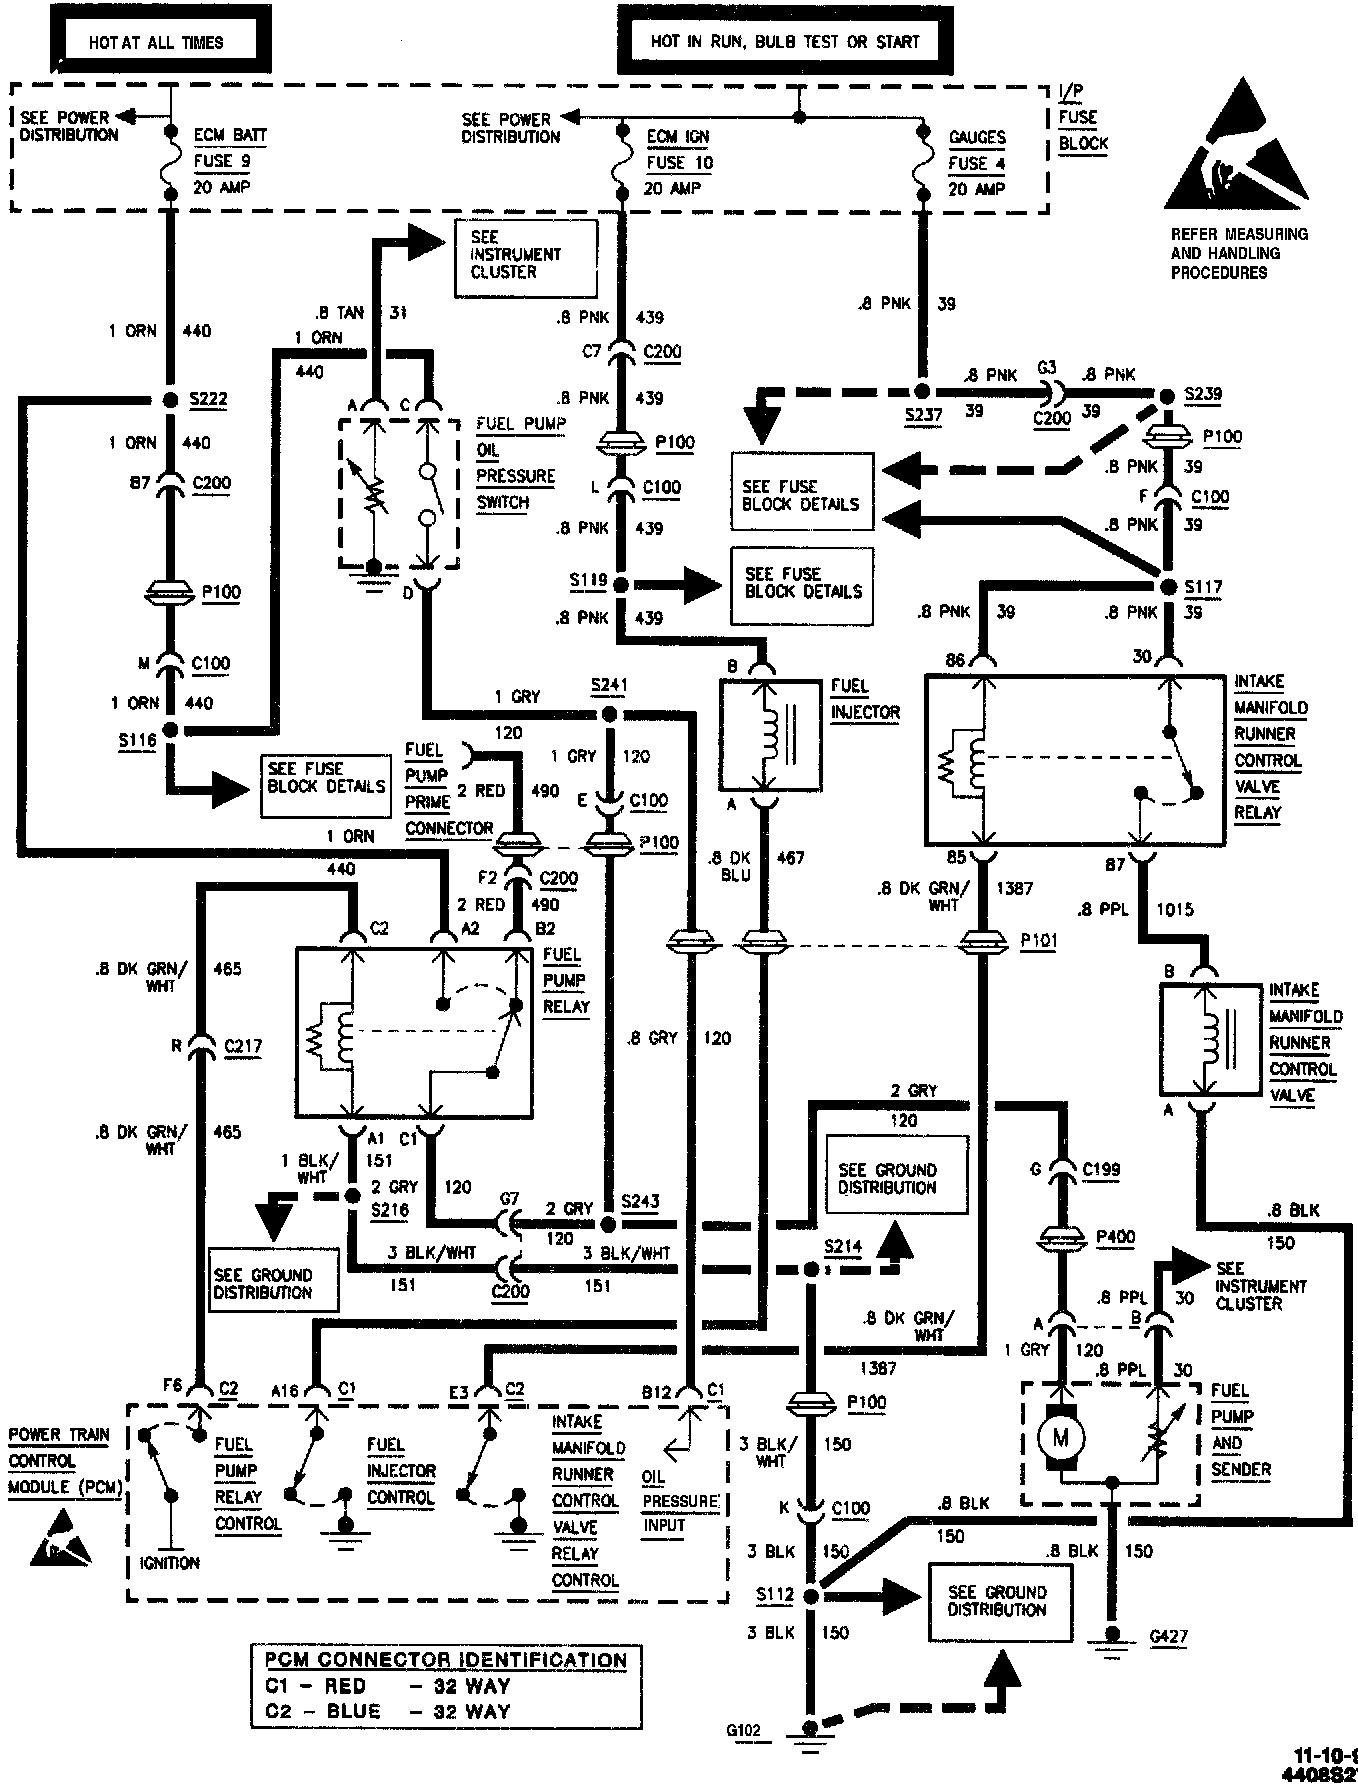 2001 S10 Tail Light Wiring Diagram My Wiring DIagram